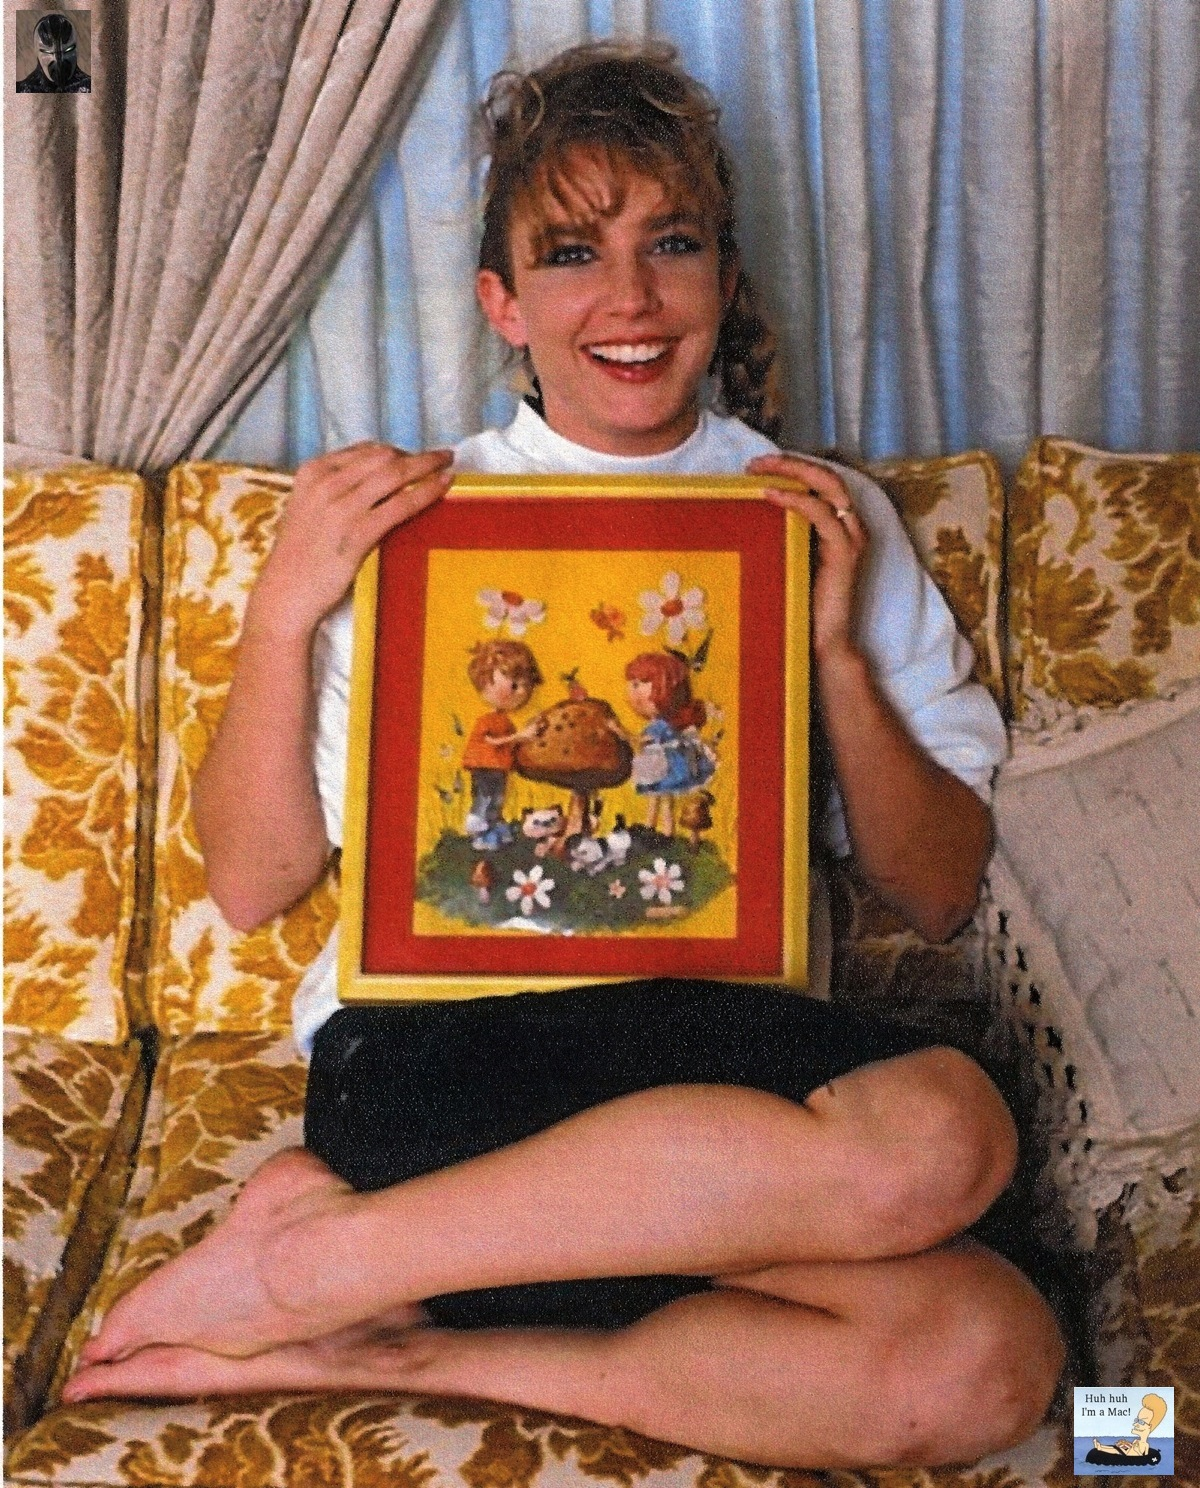 Consider, Dana plato sexy images remarkable, rather